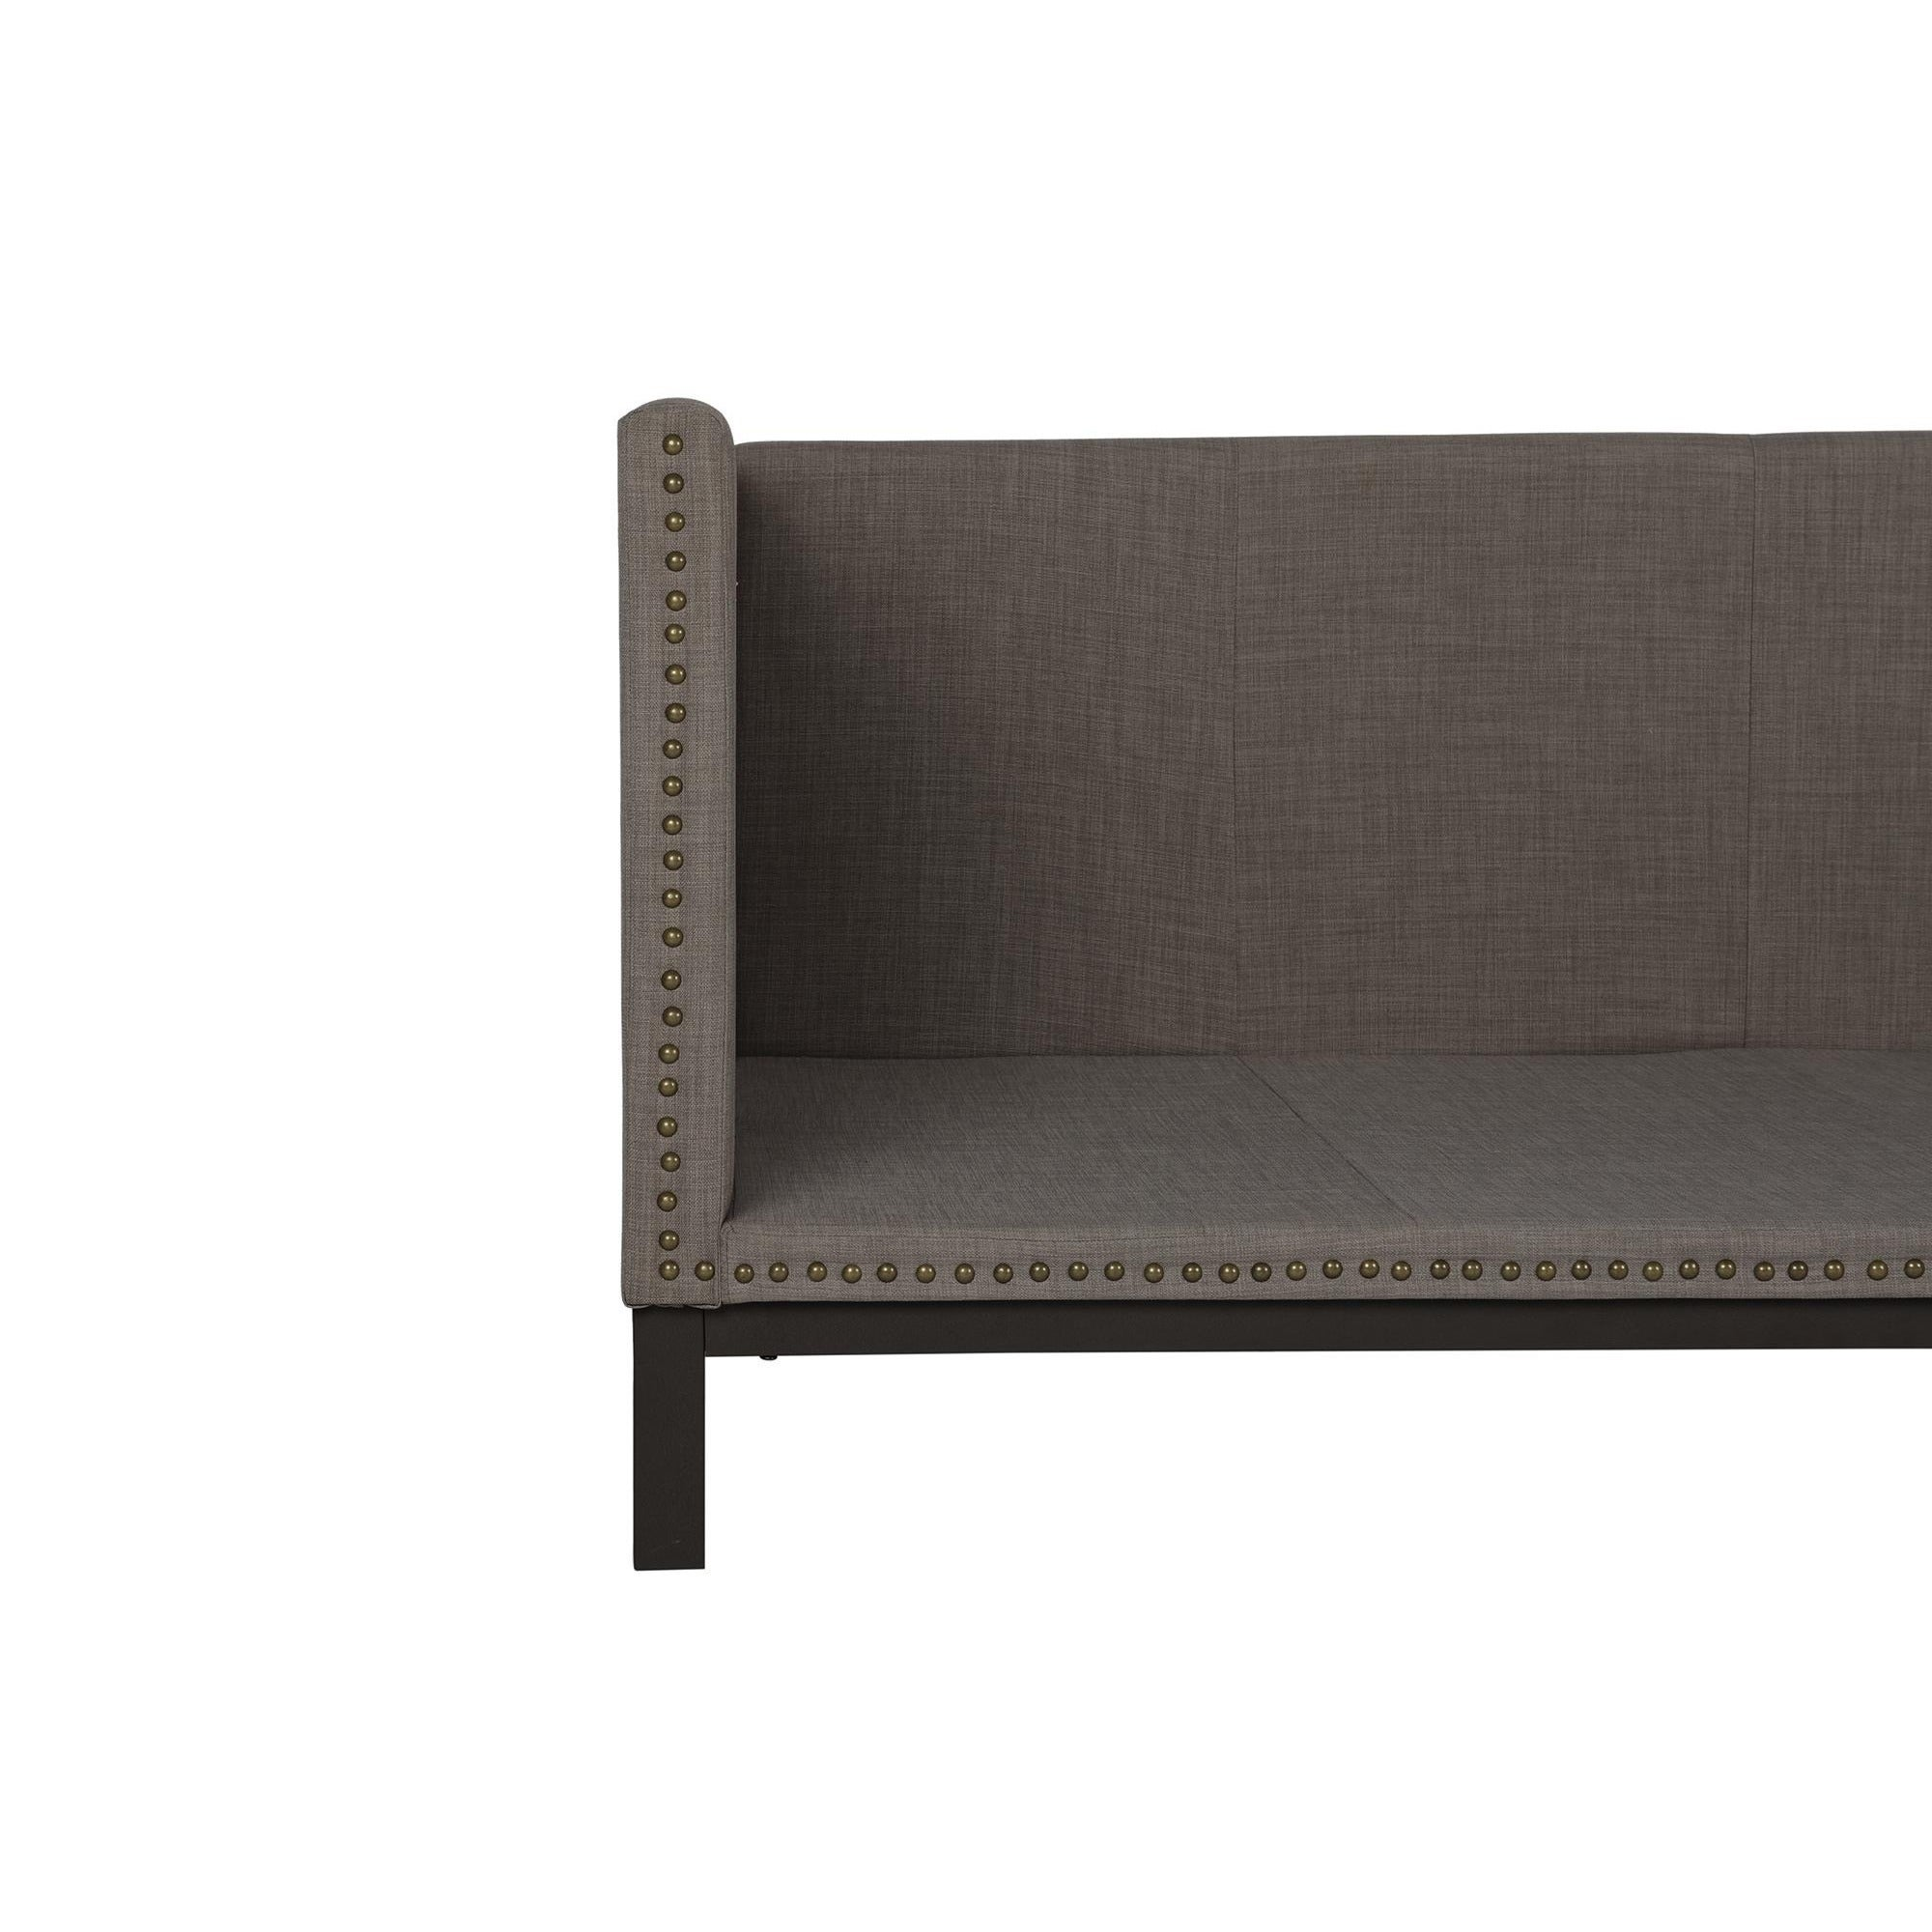 - 2109 Kupfer Hain Alty Mid-century Grau Polster Moderne Daybed